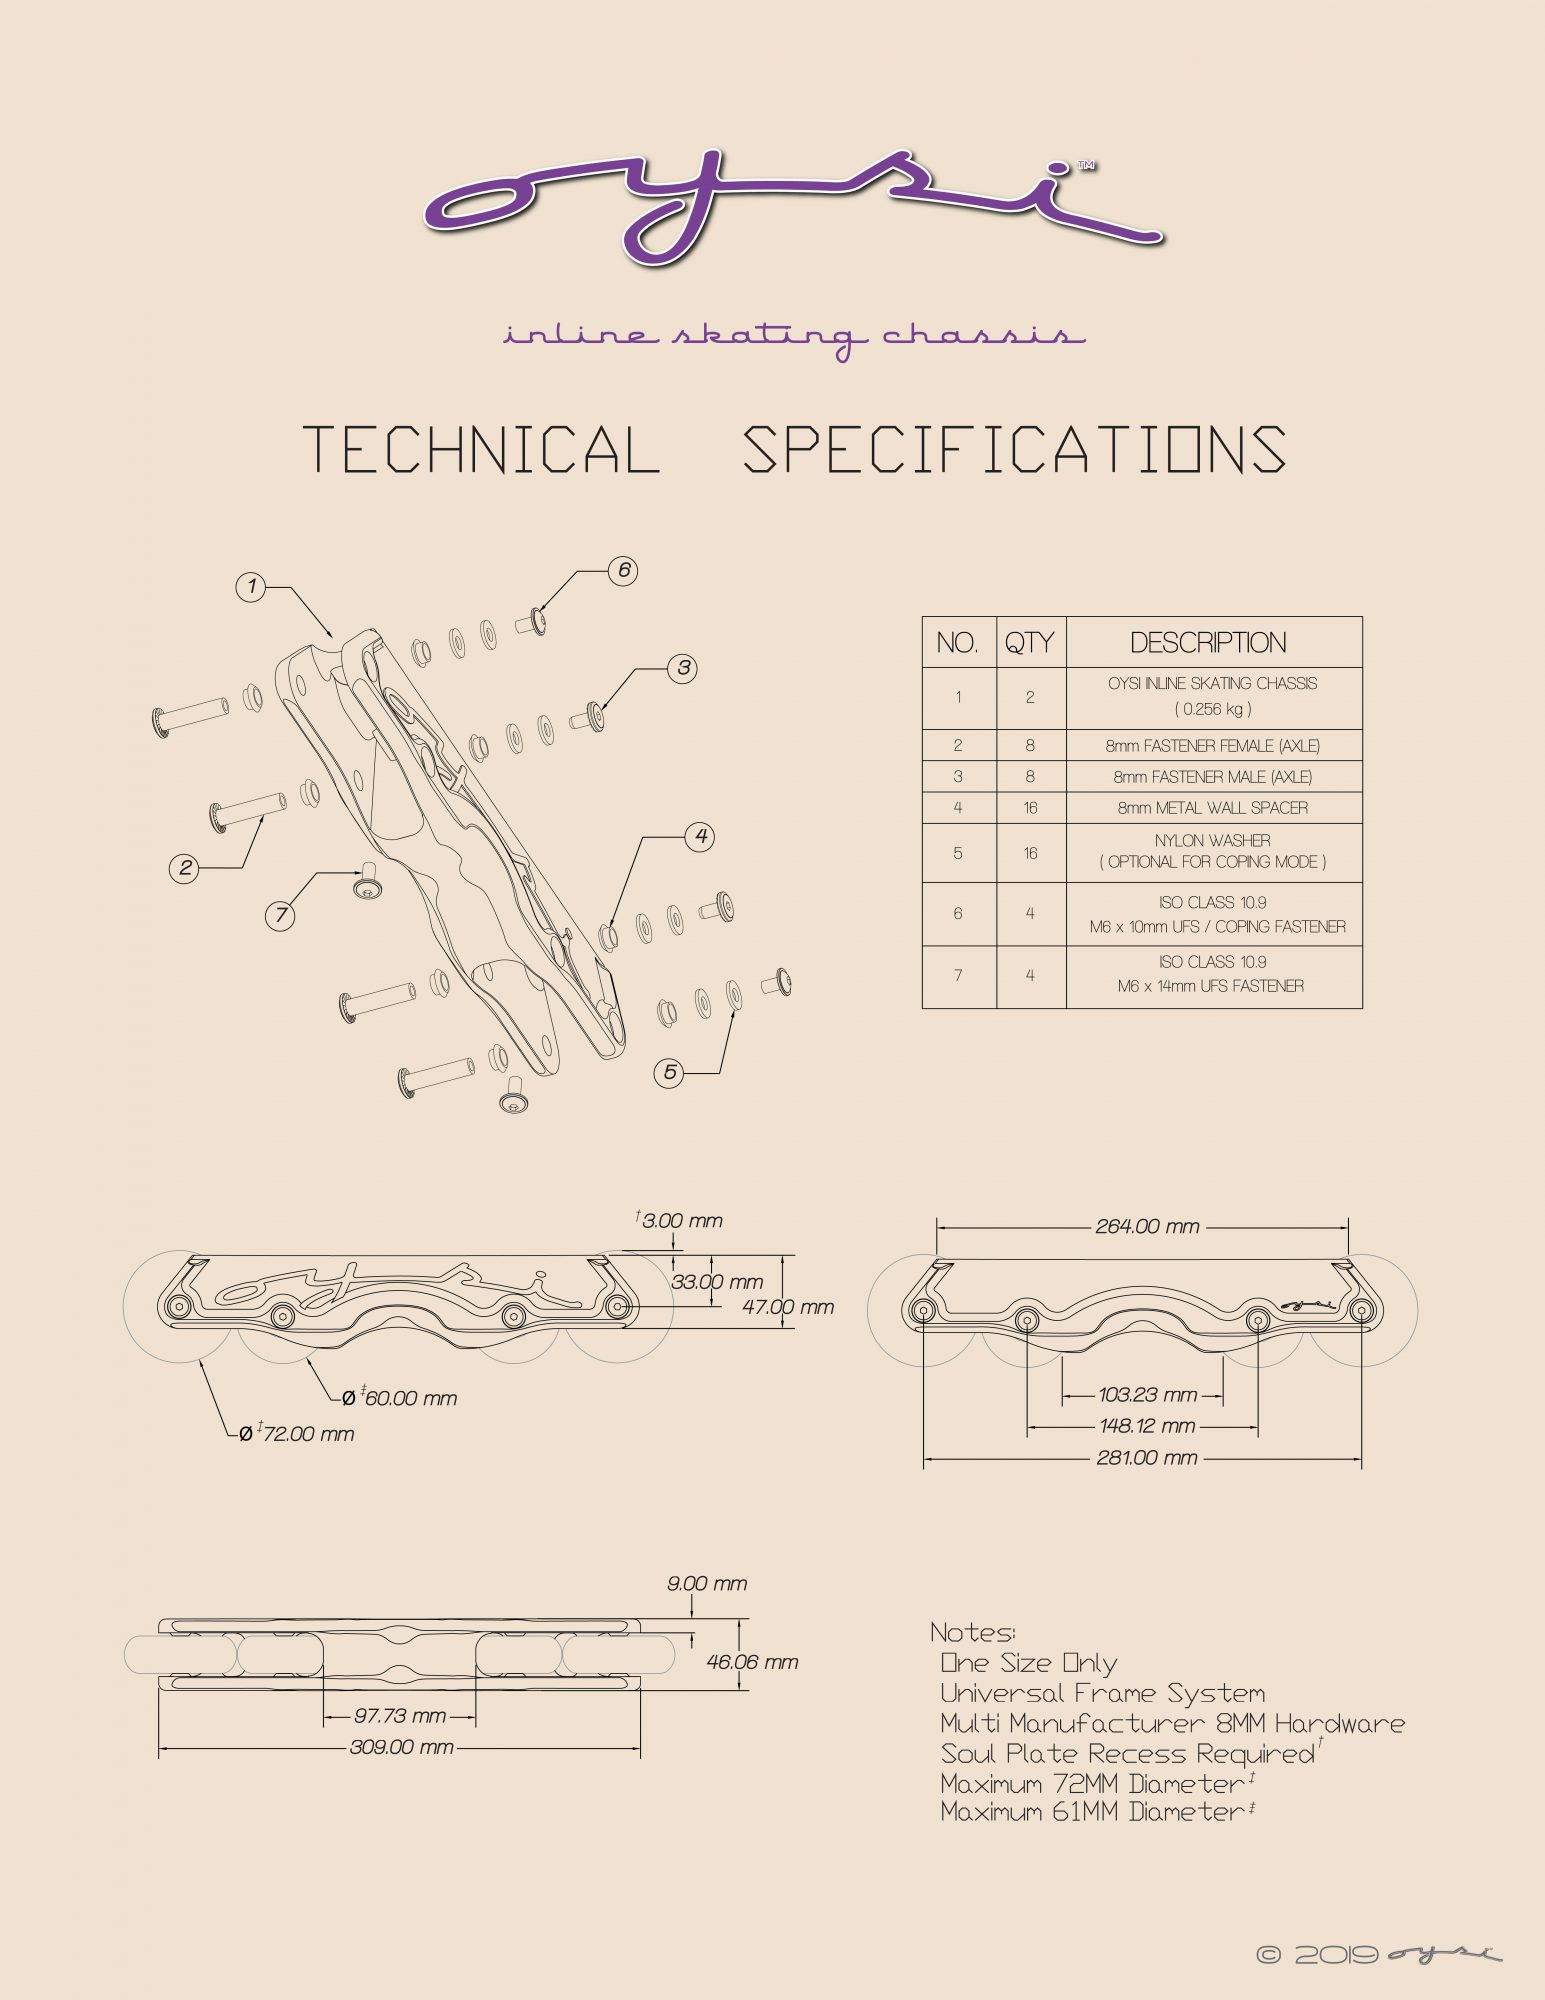 Oysi Inline Skating Chassis Technical Specifications